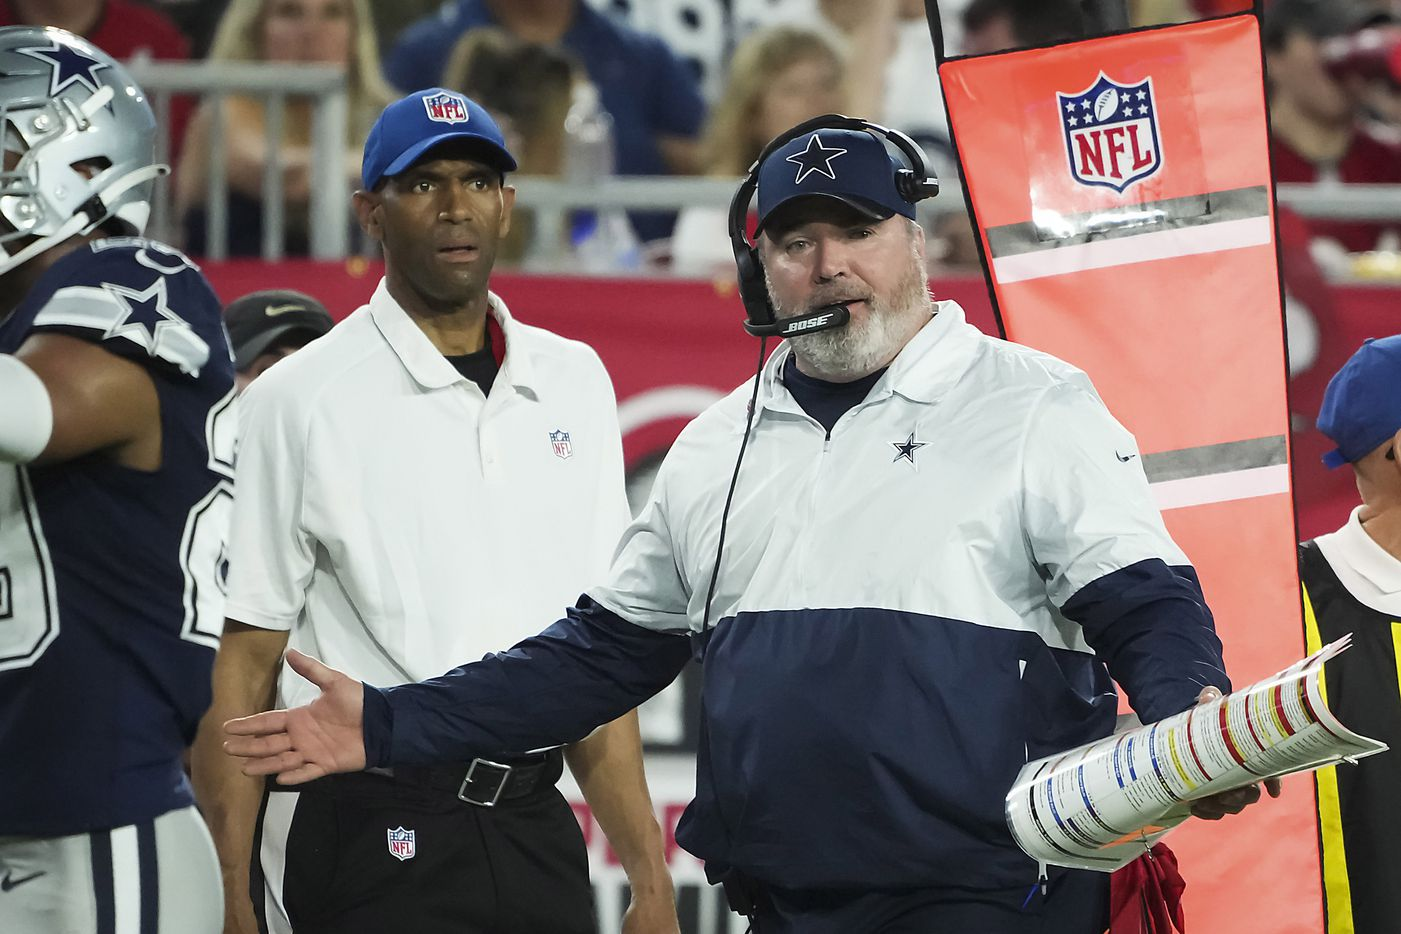 Dallas Cowboys head coach Mike McCarthy argues a call during the first half of an NFL football game against the Tampa Bay Buccaneers at Raymond James Stadium on Thursday, Sept. 9, 2021, in Tampa, Fla. (Smiley N. Pool/The Dallas Morning News)